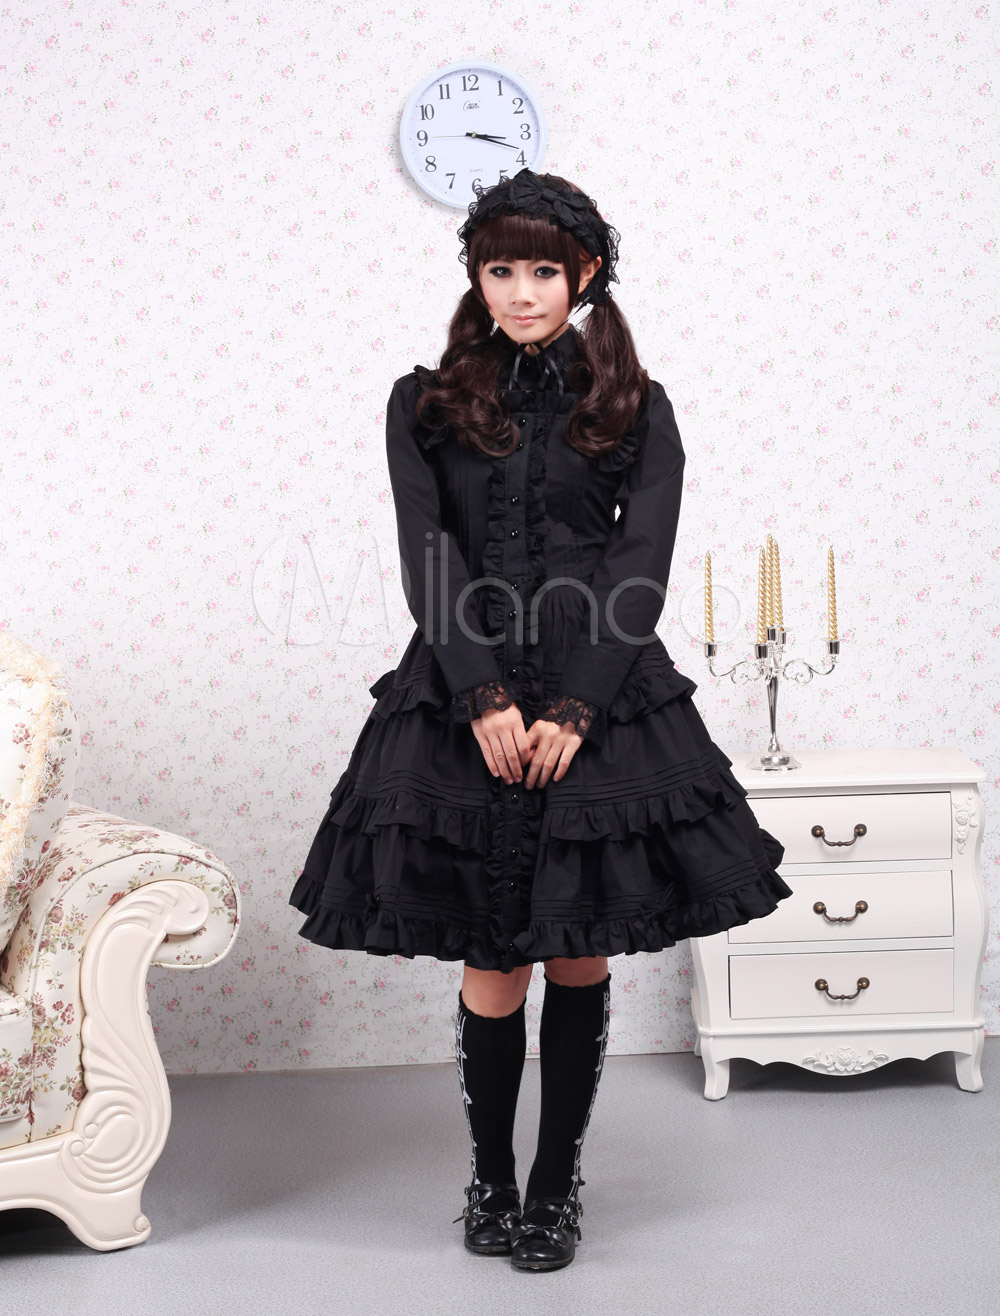 Buy Pure Black Cotton Lolita One-piece Dress Long Sleeves Ruffles Lace Trim for $79.99 in Milanoo store